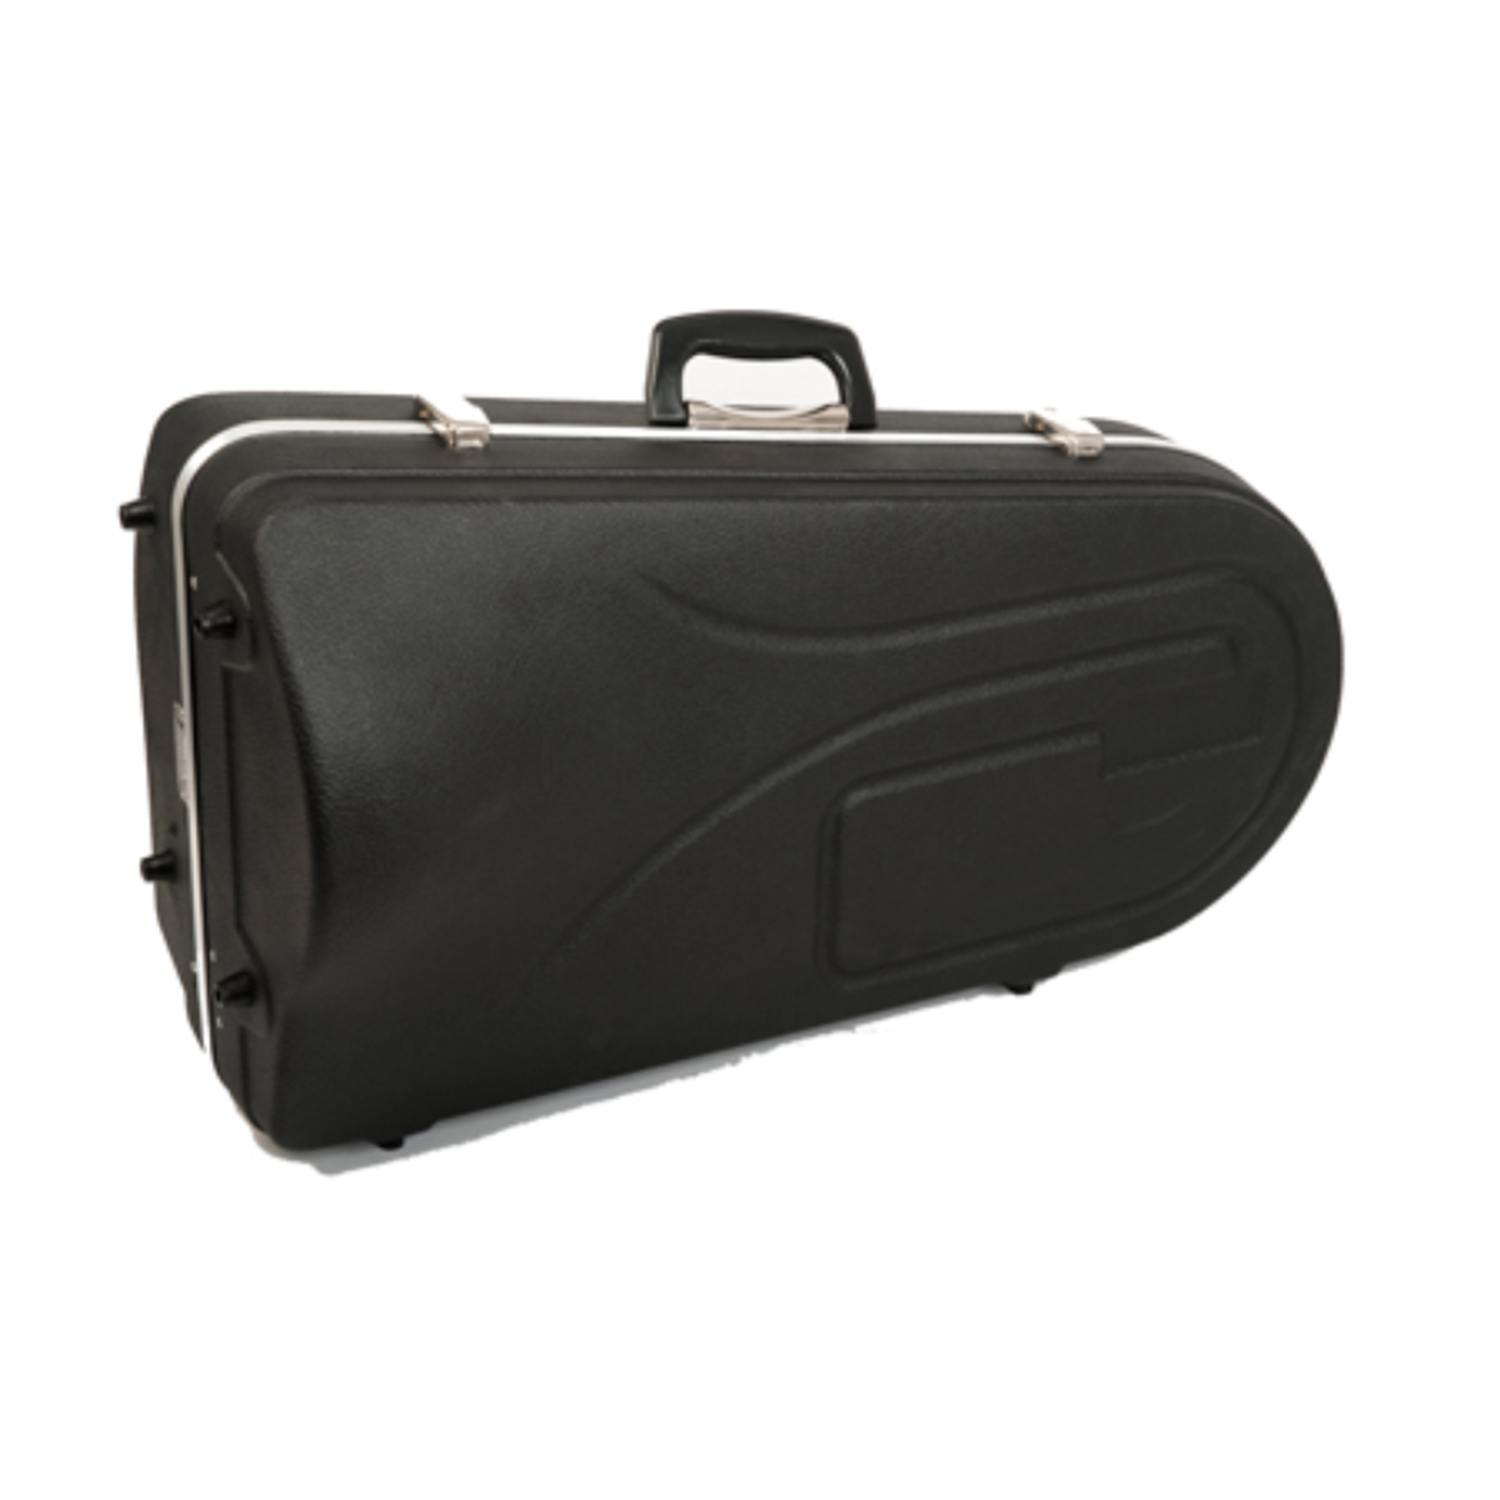 Hiscox Tenor Horn Case - Black Exterior with Silver Interior